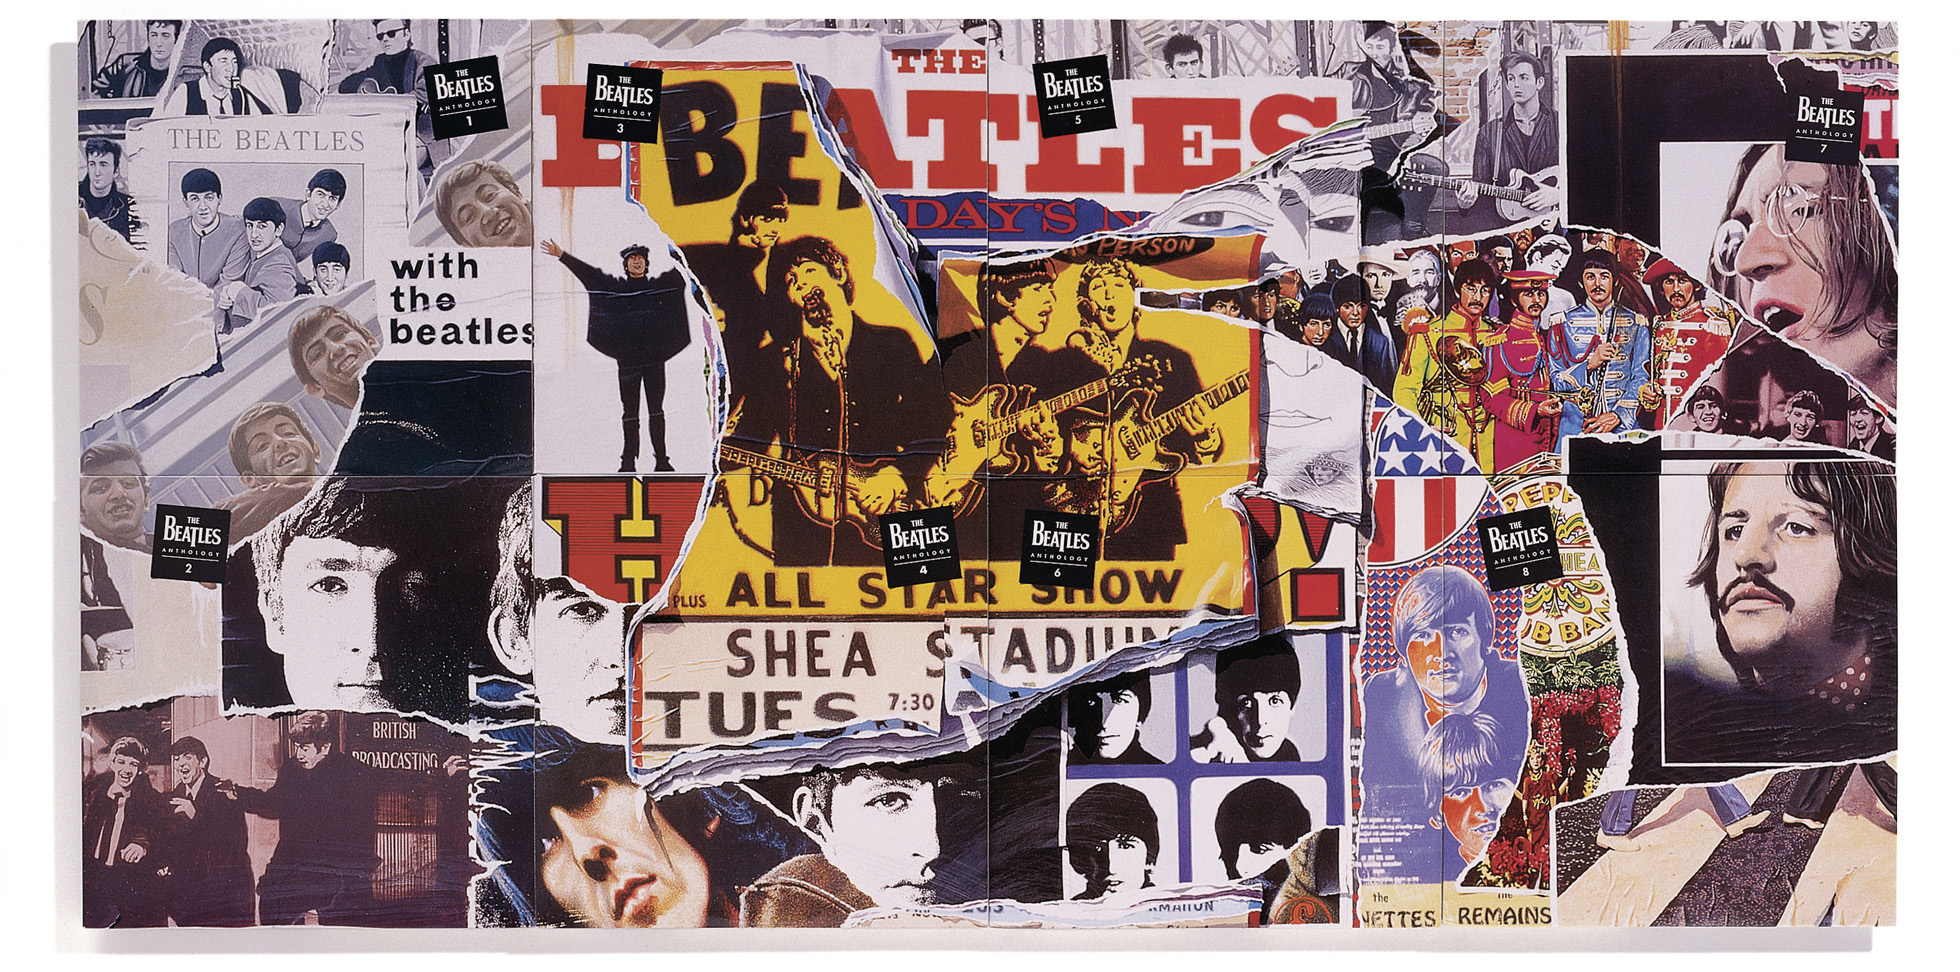 Rediscovering The Beatles Brand in 1996